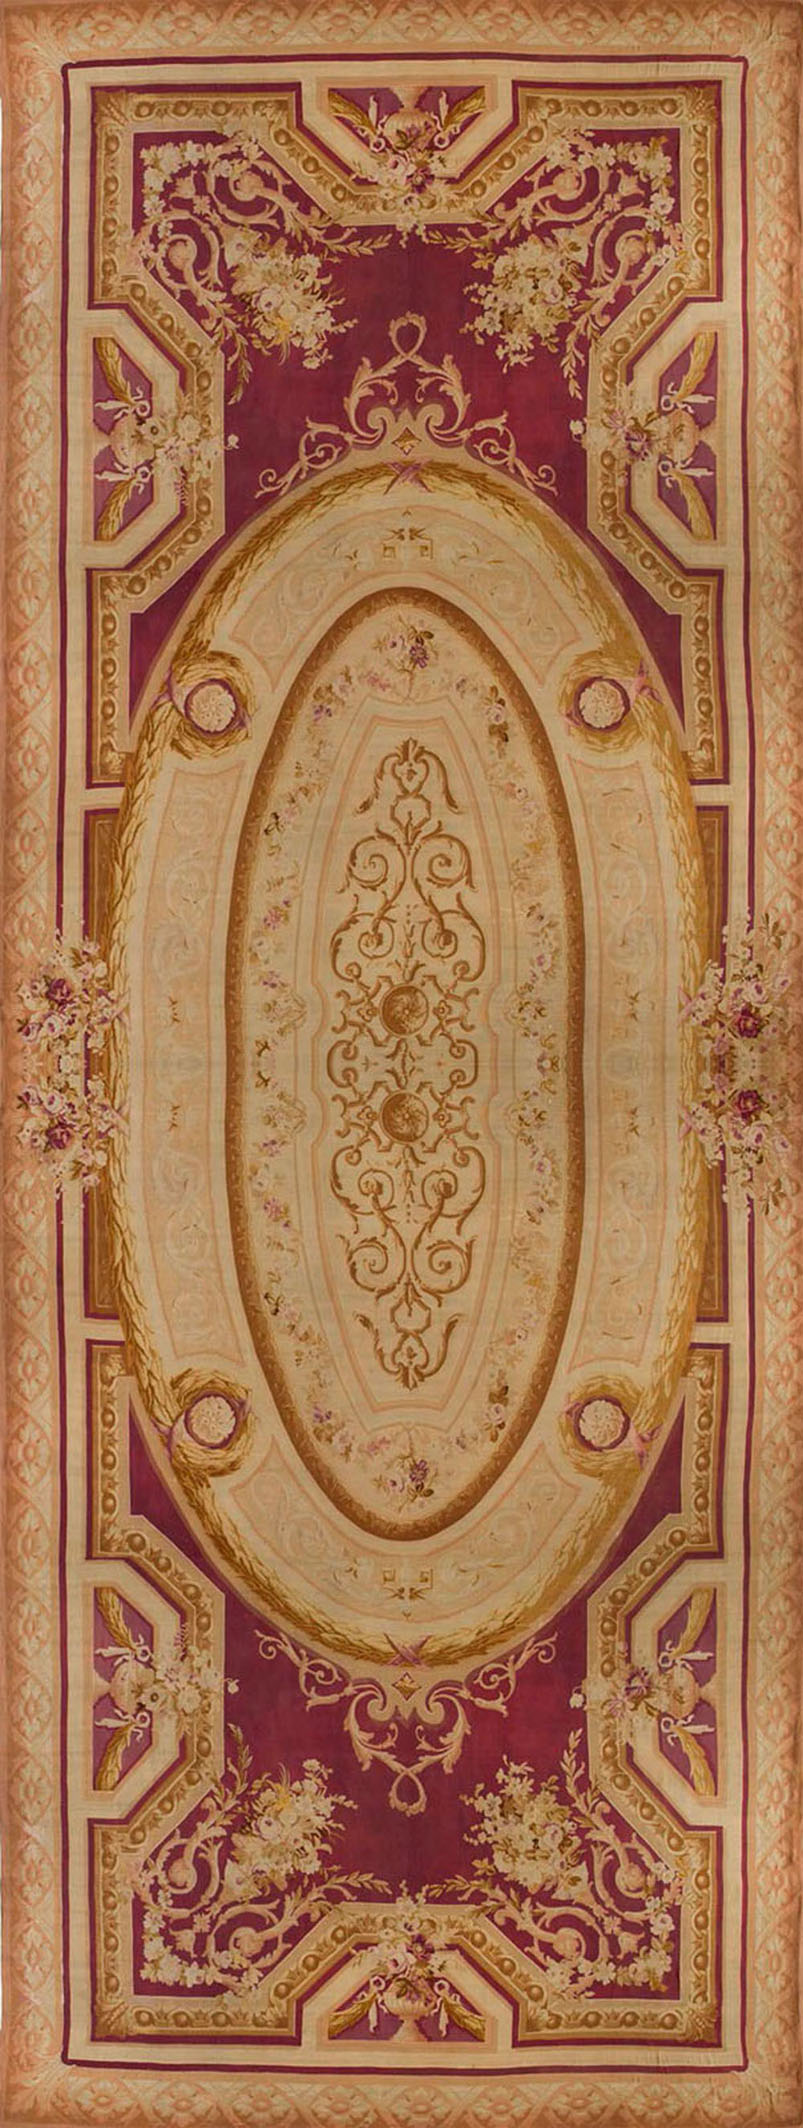 Oversize Antique French Aubusson Rug